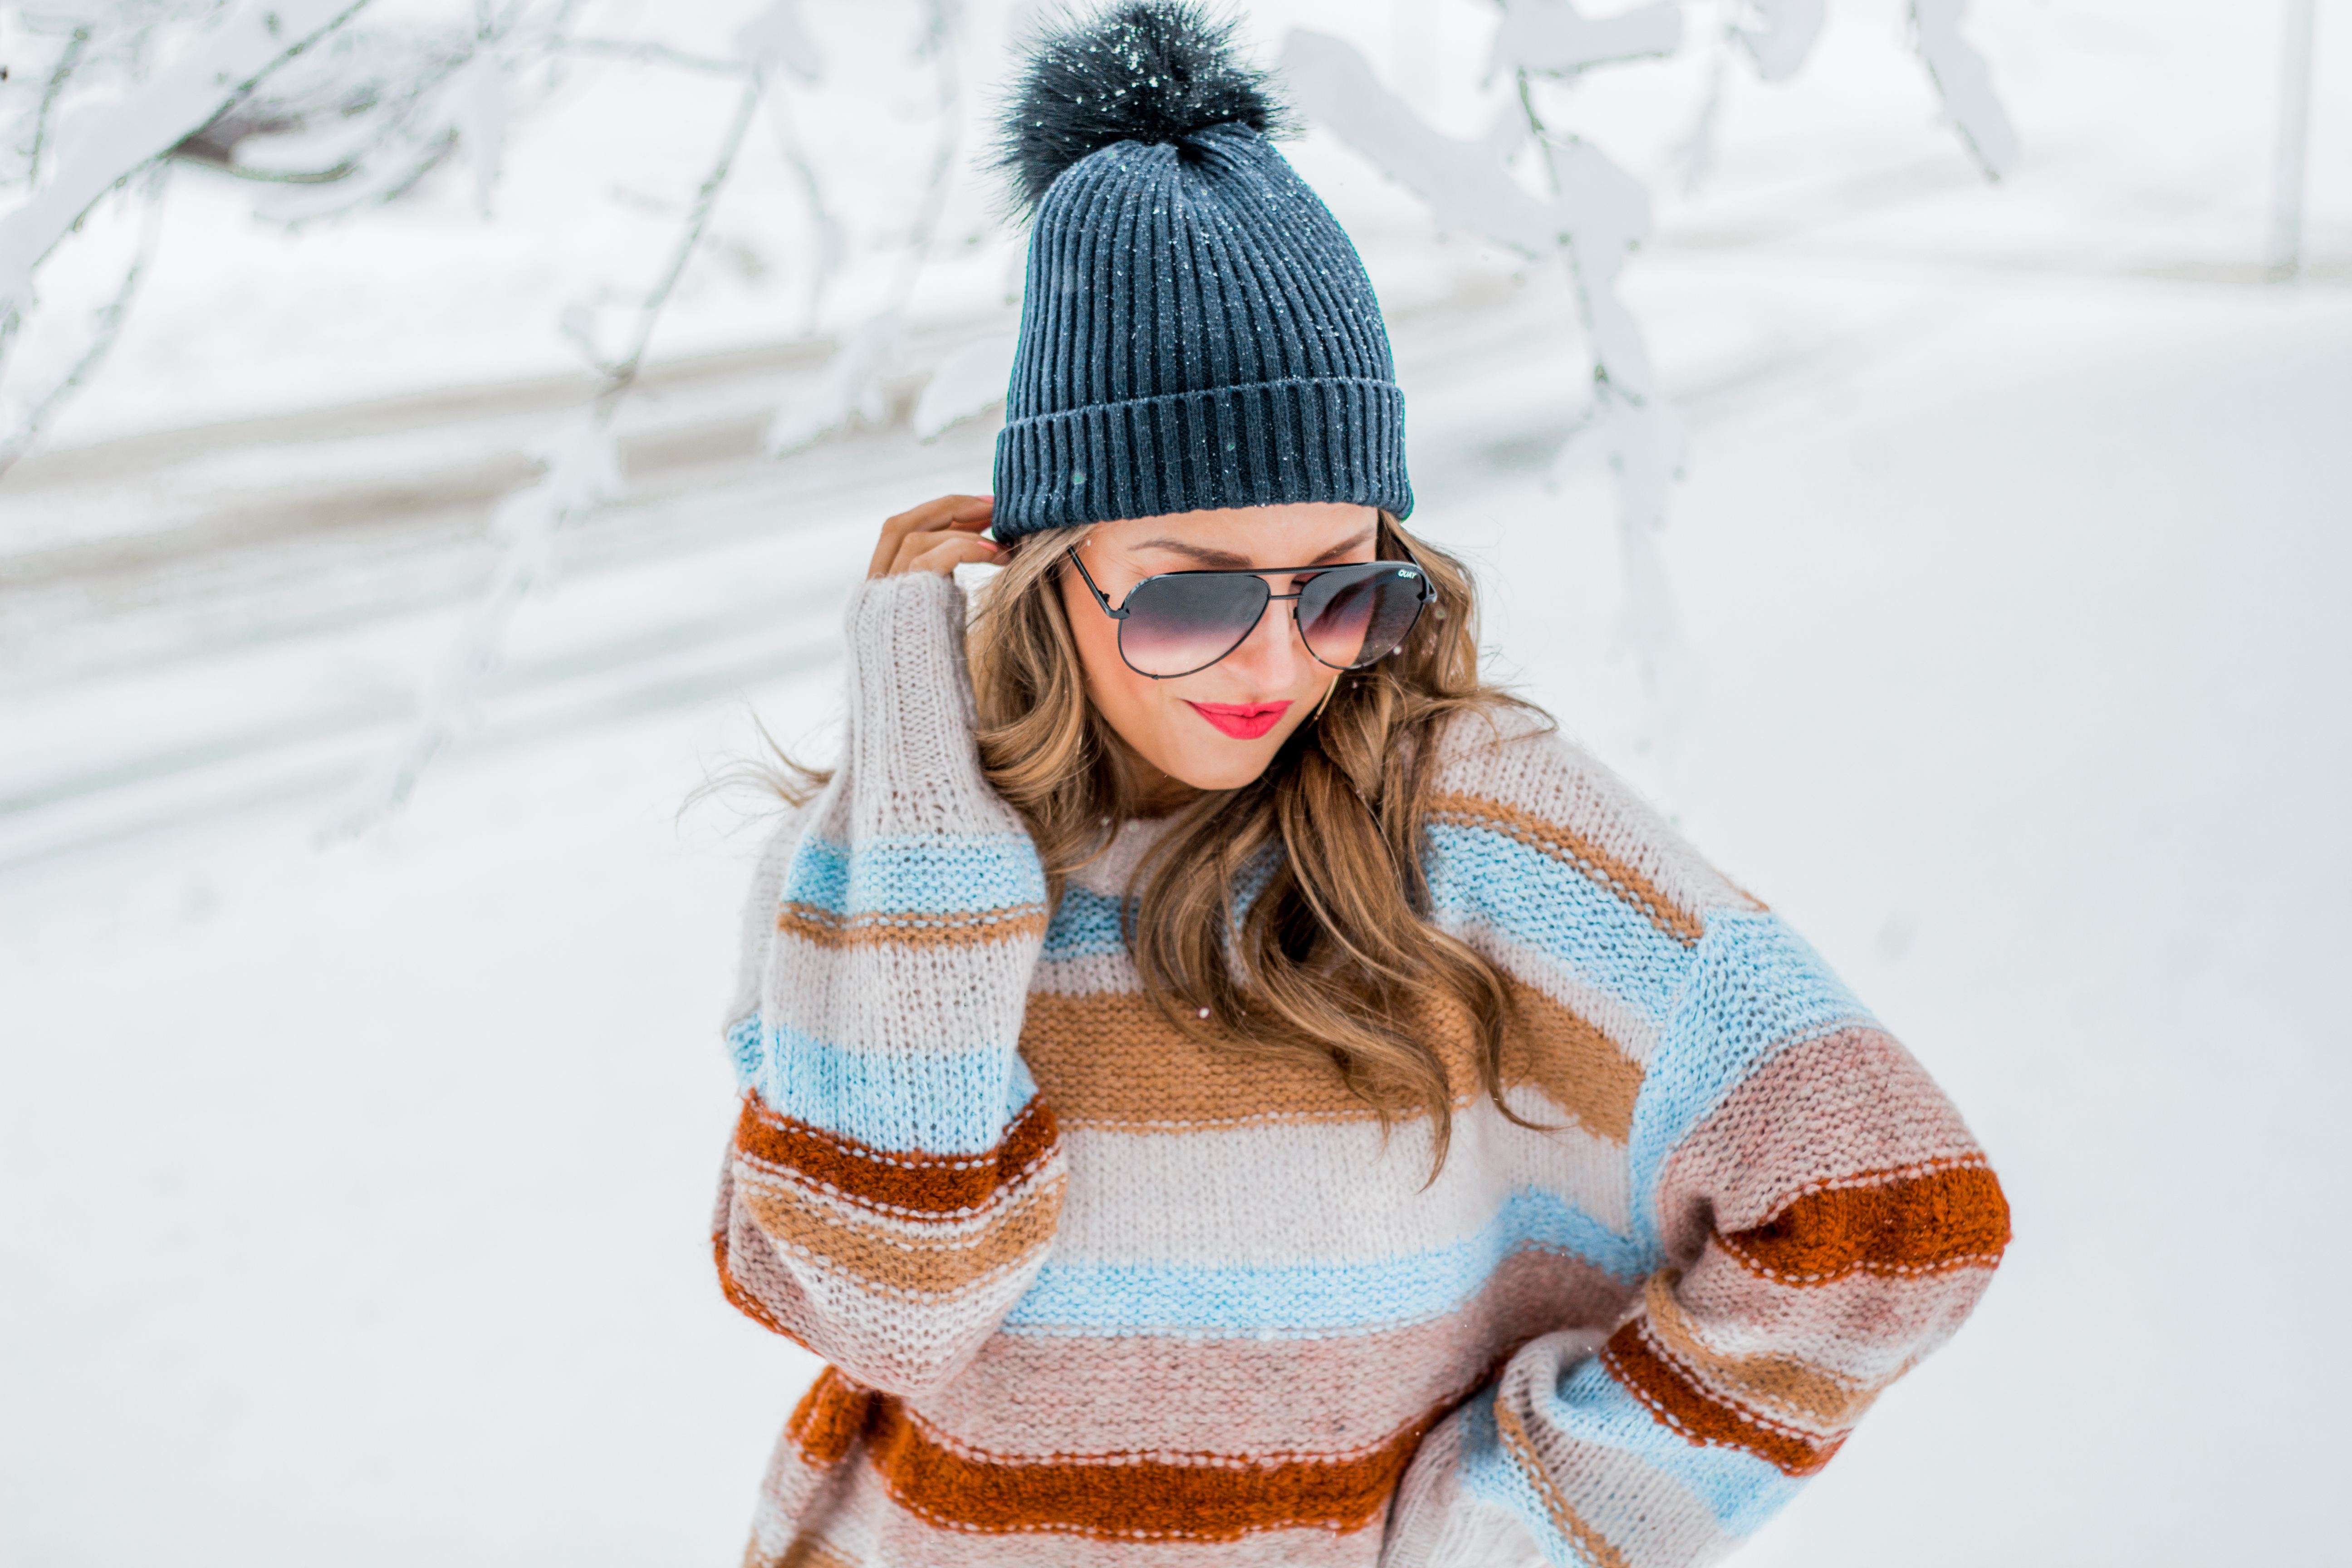 Women's Fashion - American Eagle Sweater - Hunter Boots - Beanie - Snow Day - OOTD - Fashion Blogger - Winter Fashion - 4